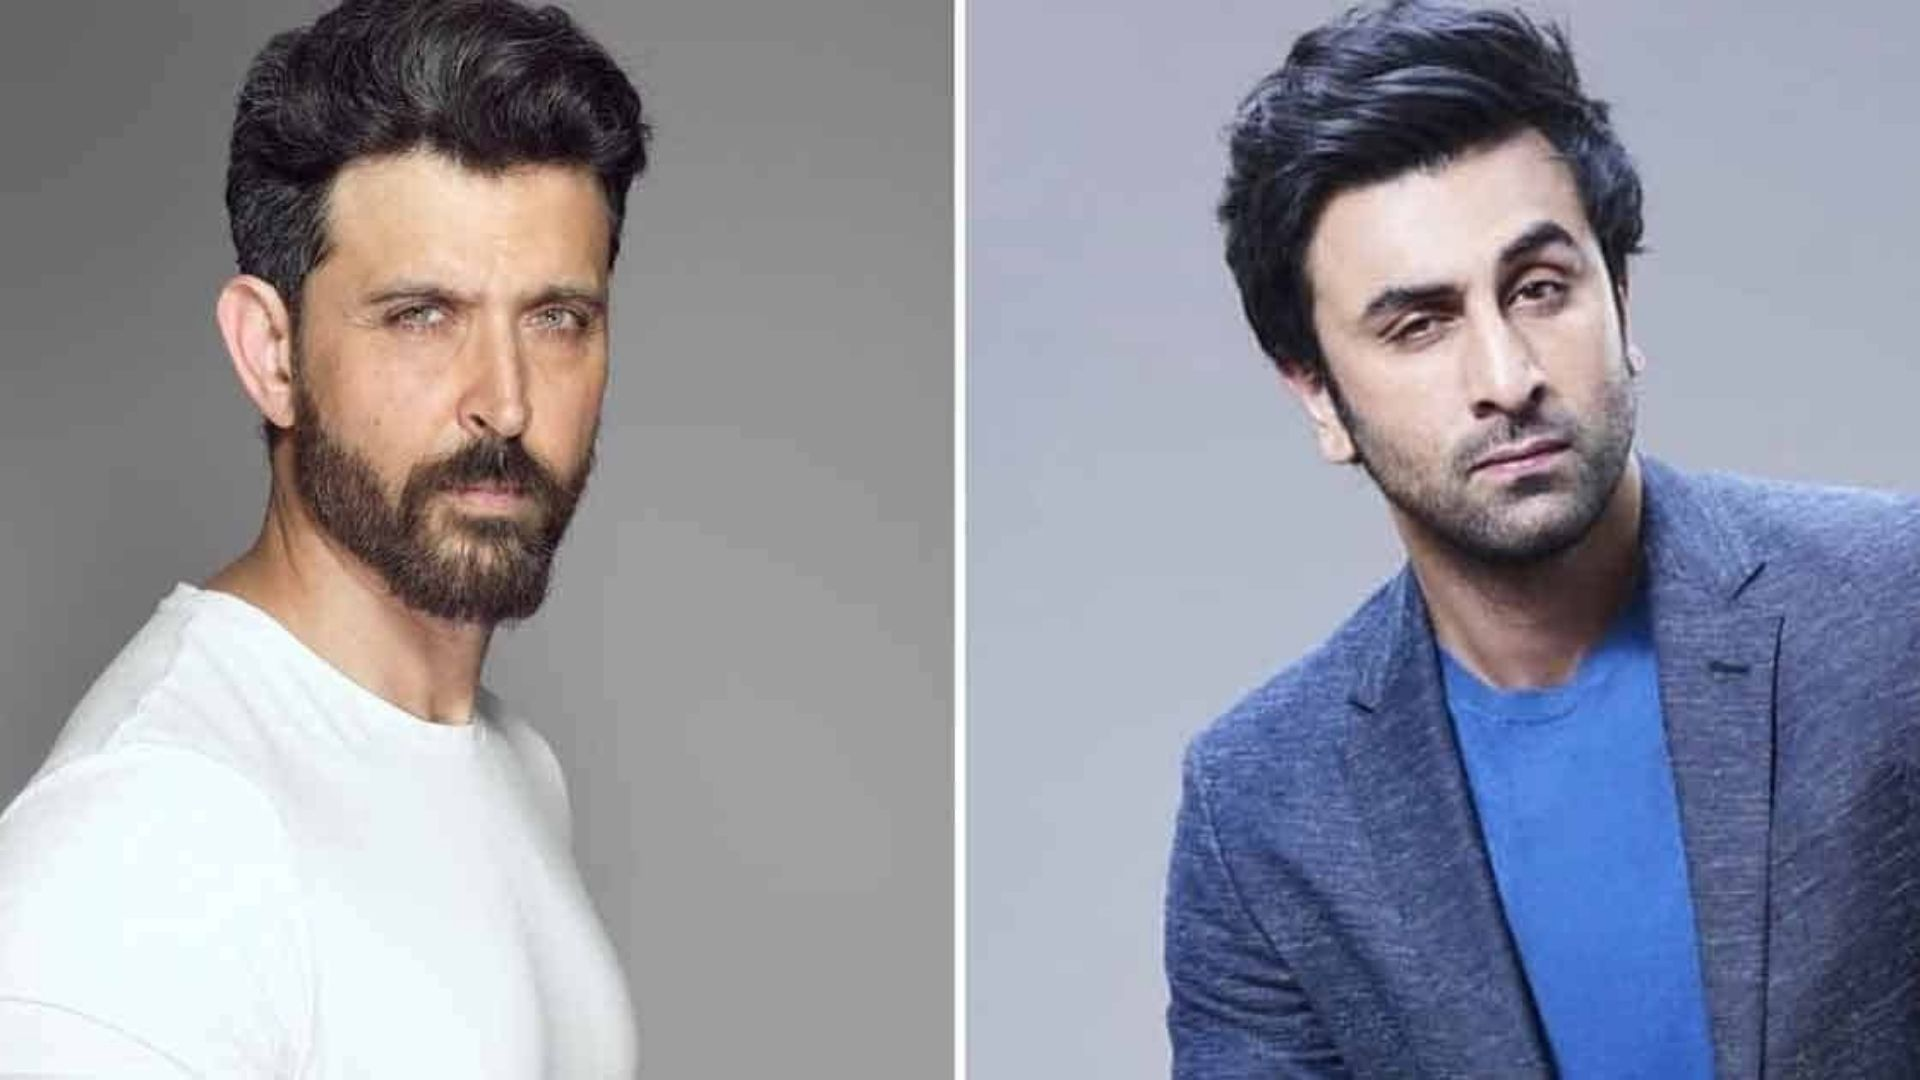 Ramayan: Hrithik Roshan-Ranbir Kapoor Charge A Bomb To Play Ravan And Ram? Mythological Trilogy To Cost A Whopping Amount – Deets Inside